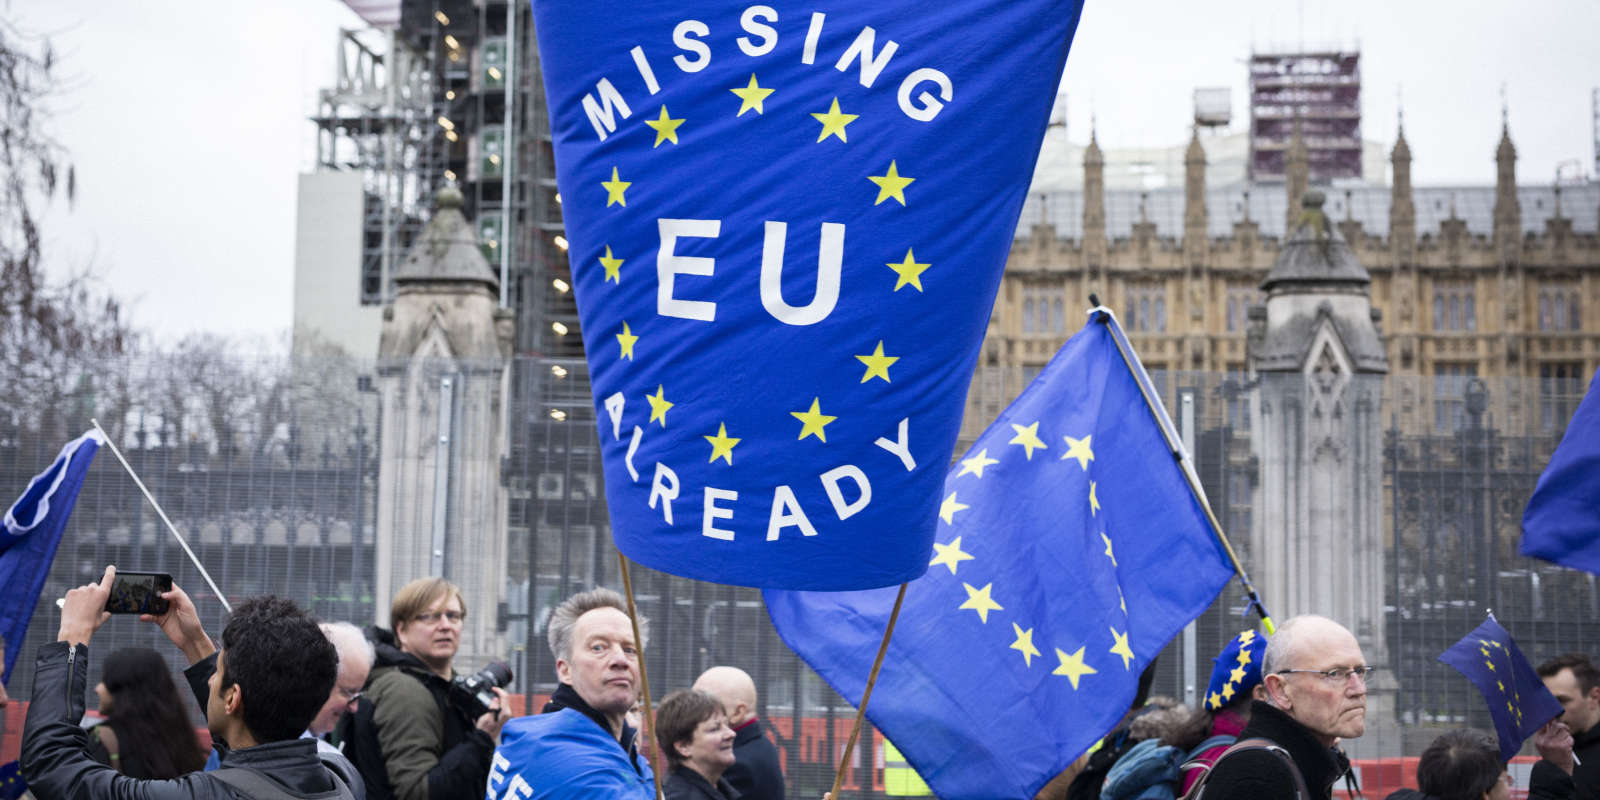 Environ 200 opposants à Brexit ont marché de Downing Street à la Maison de l'Europe, le siège de l'Union européenne au Royaume-Uni. La marche a été marquée par les insultes des partisans d'extrême-droite de Brexit, alors qu'il passait à Whitehall et devant le Parlement britannique. Photo © Ed Alcock / M.Y.O.P. 31/1/2020 About 200 opposants of Brexit marched from Downing Street, to Europe House, the UK HQ of the European Union. The march was dogged by insults from far-right supporters of brexit, as it passed down Whitehall and in front of the British parliament. Photo © Ed Alcock / M.Y.O.P. 31/1/2020